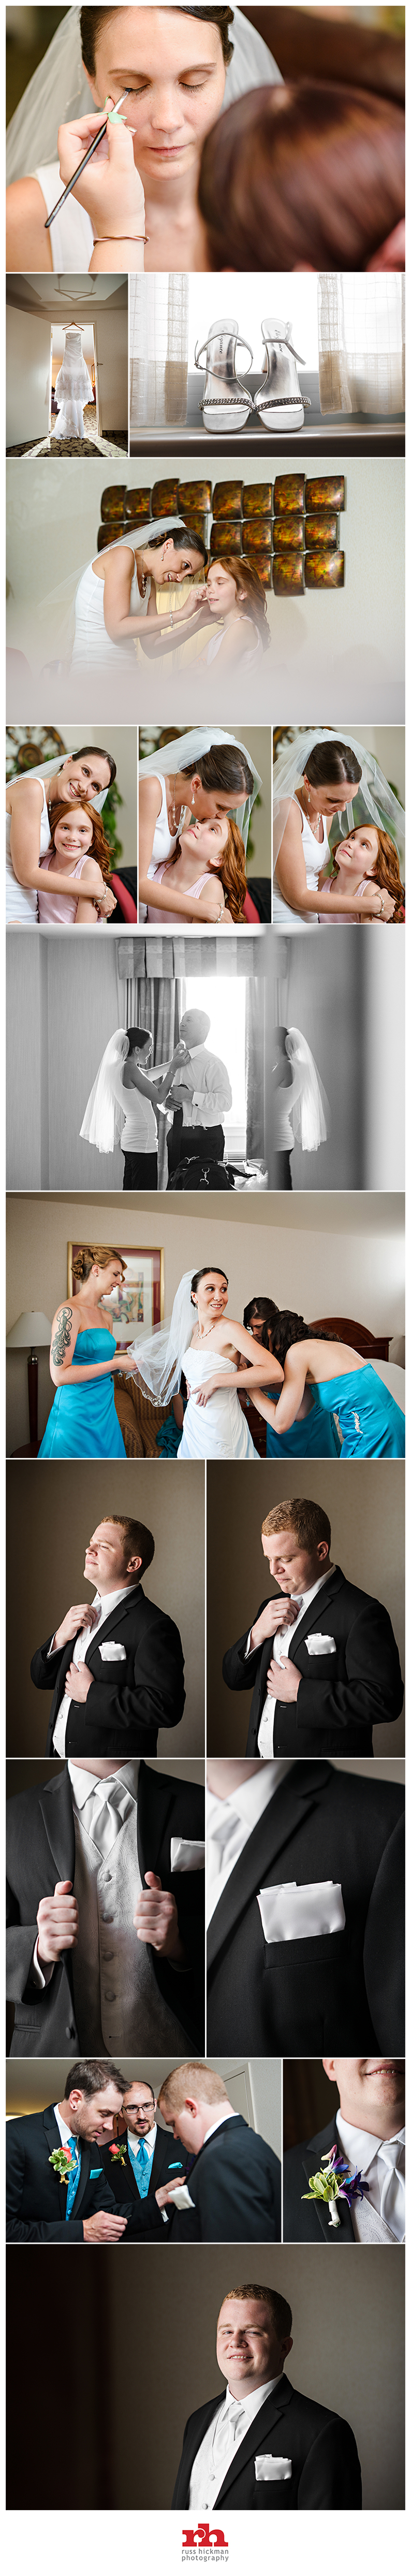 Philadelphia Wedding Photographer SCWB002